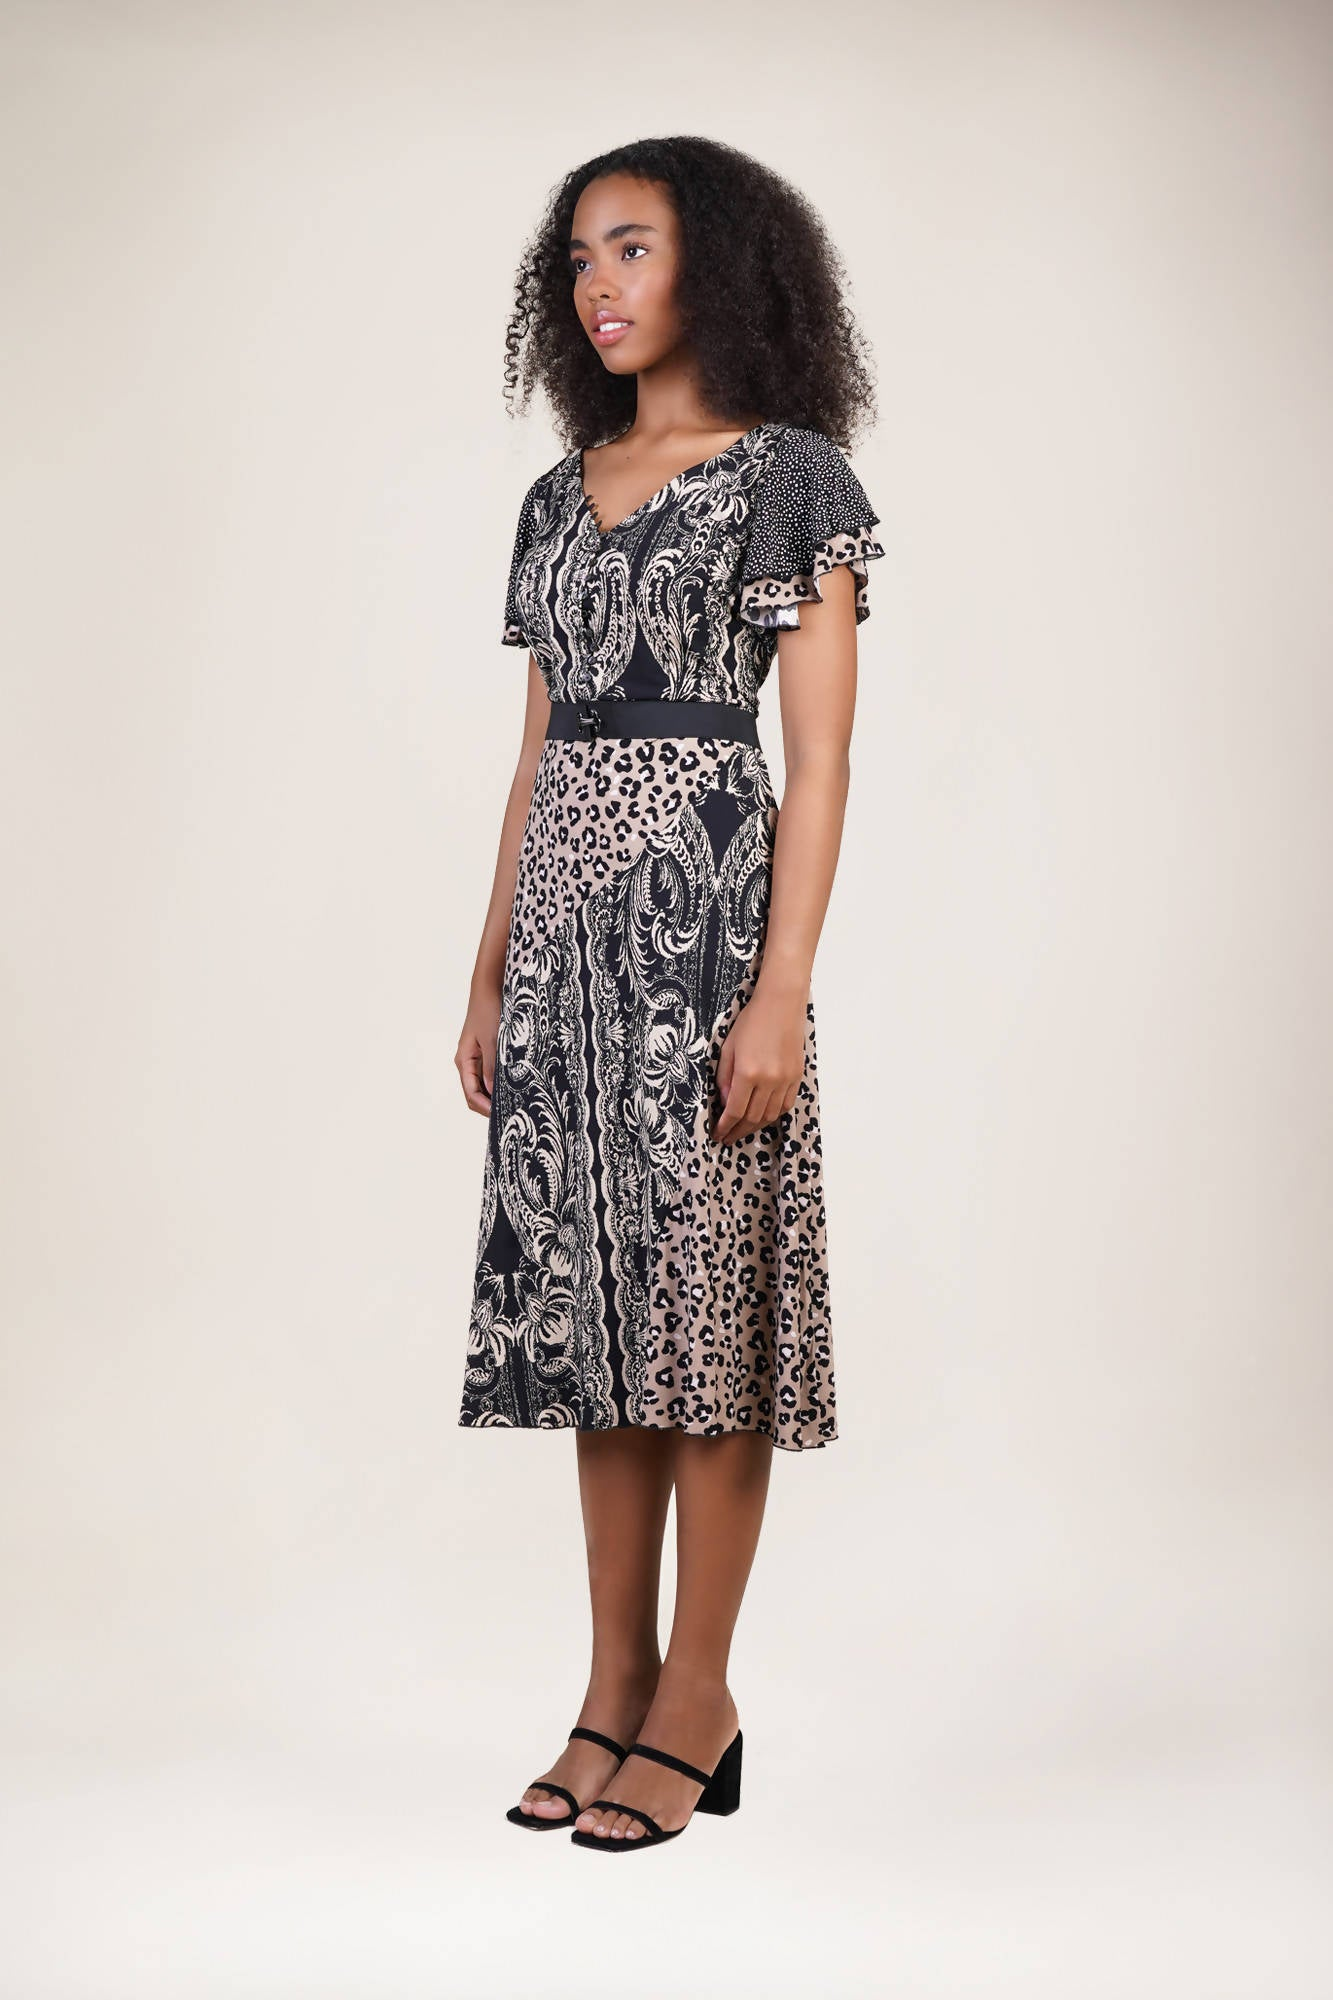 Drayton Dress in Feline Pride